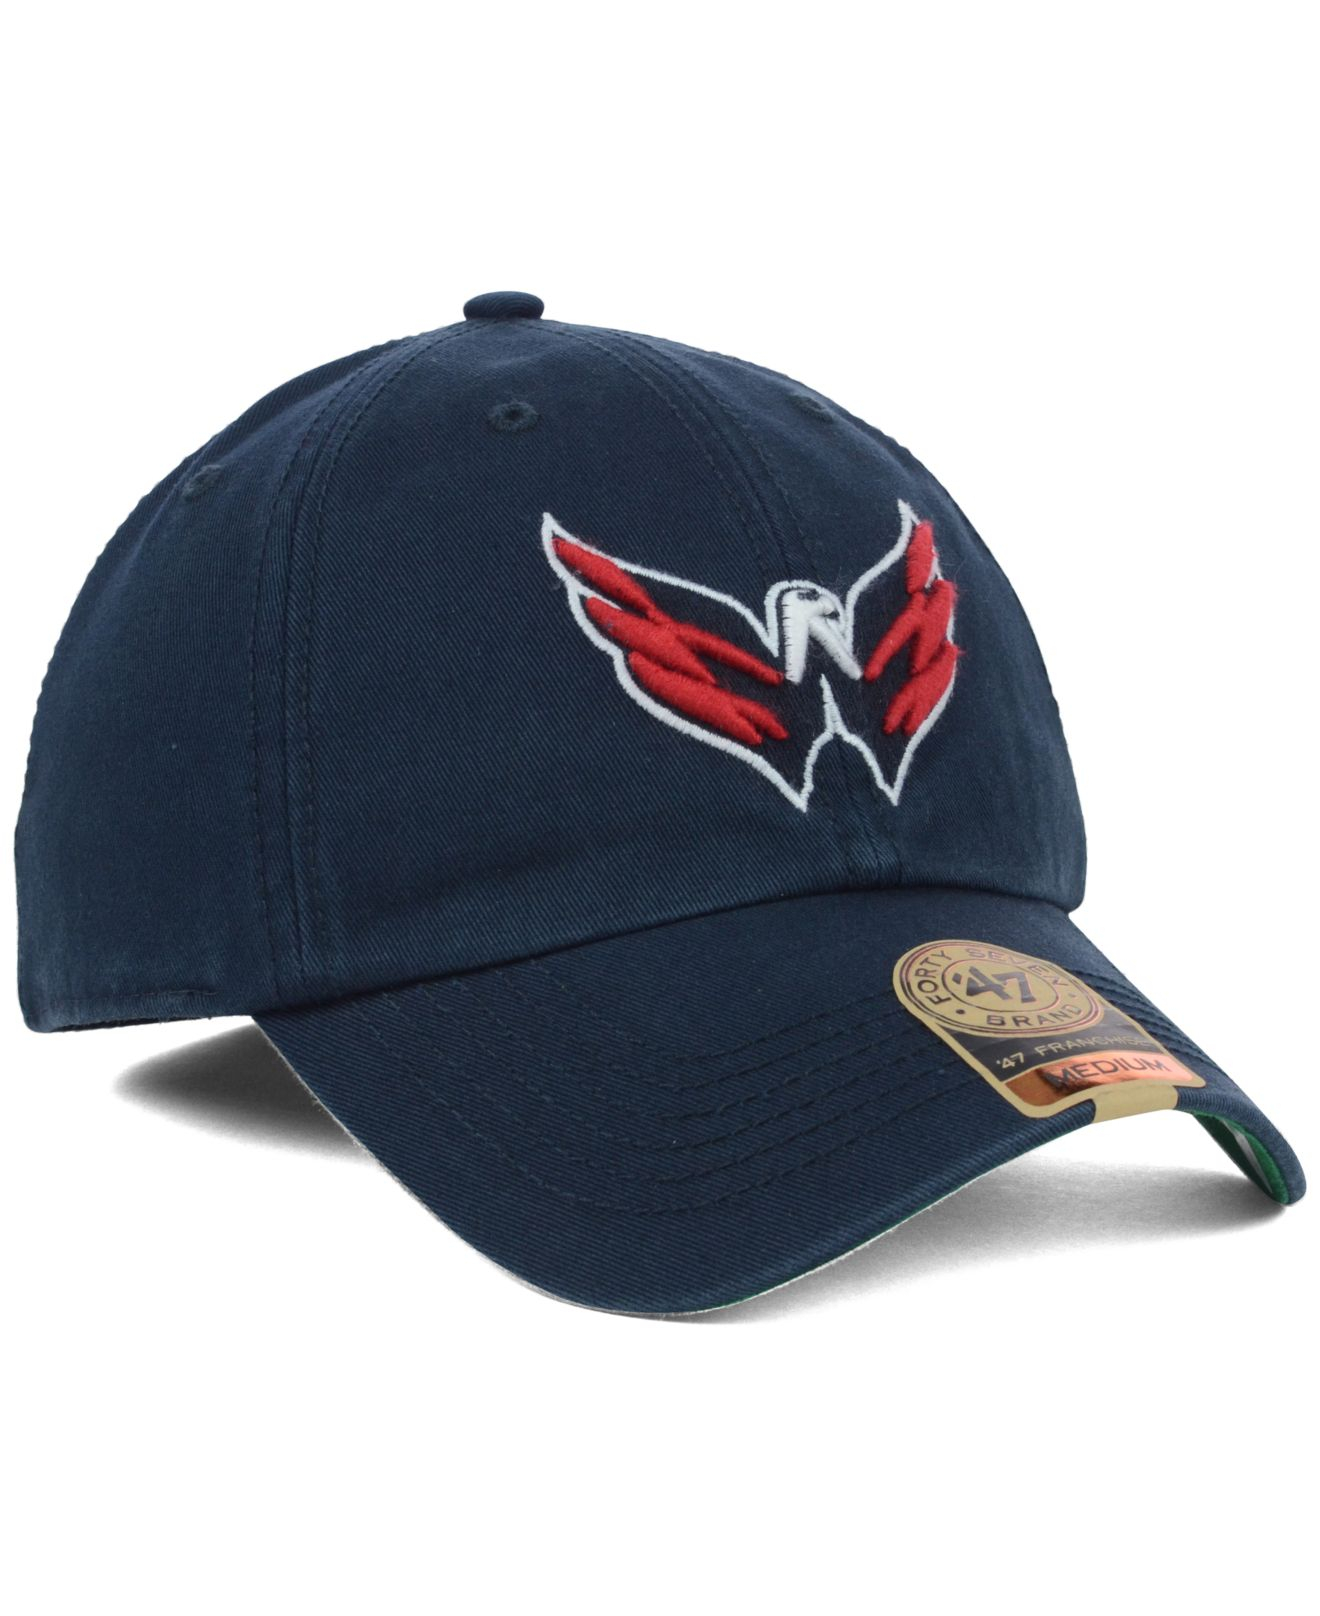 cfad88f5daa ... clearance low cost lyst 47 brand washington capitals franchise cap in  blue for men 4c961 a83cd